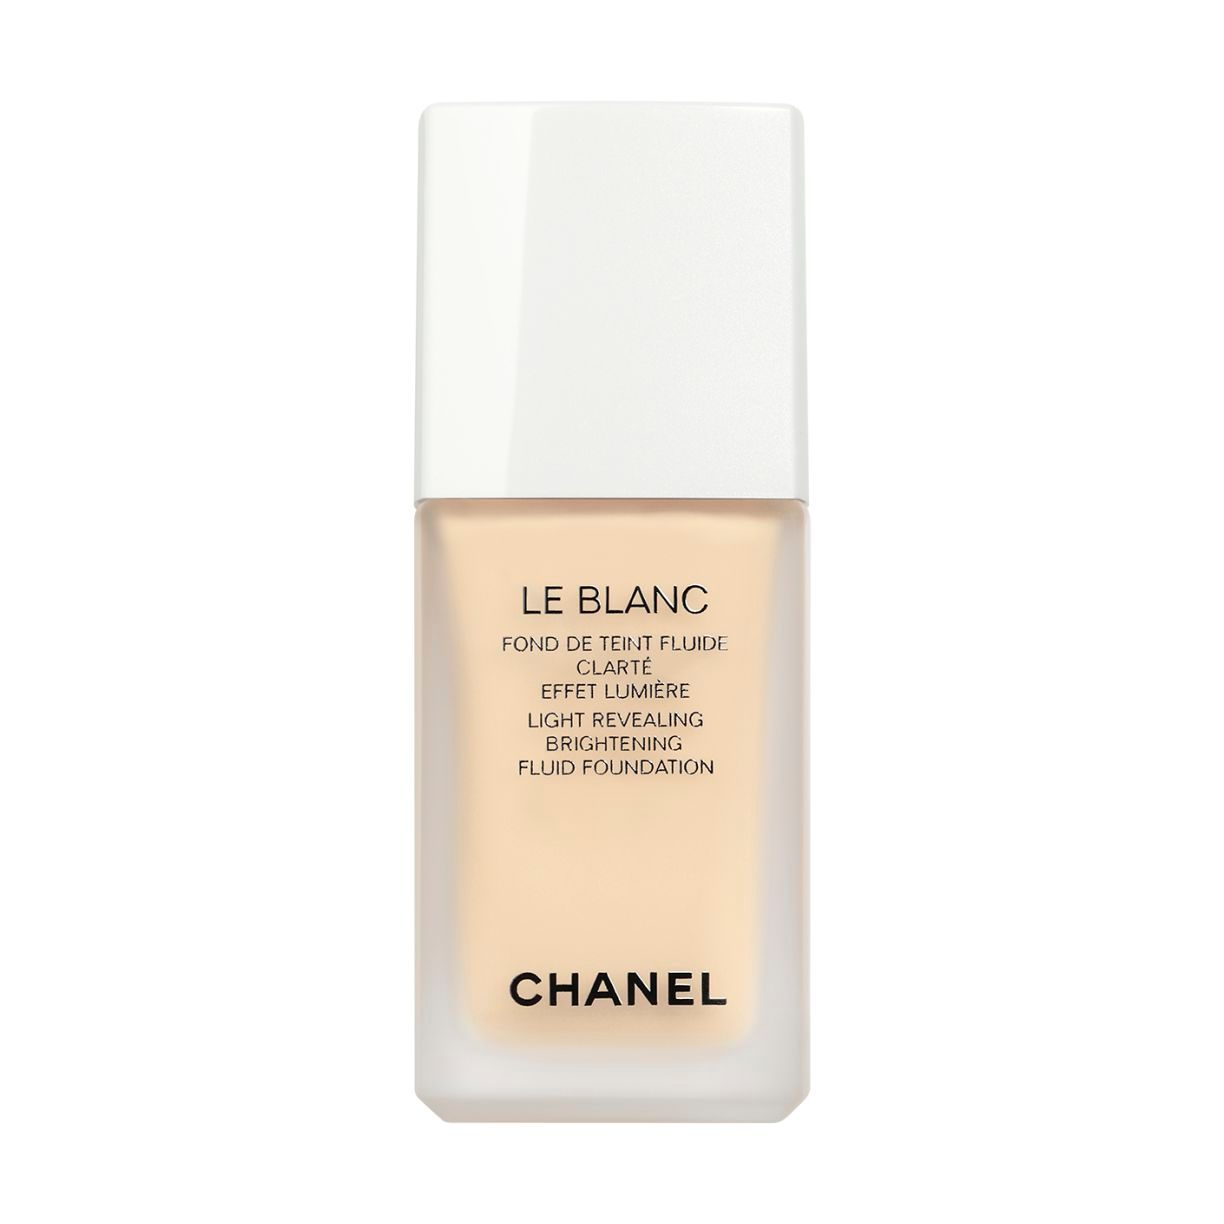 LE BLANC LIGHT REVEALING BRIGHTENING FLUID FOUNDATION